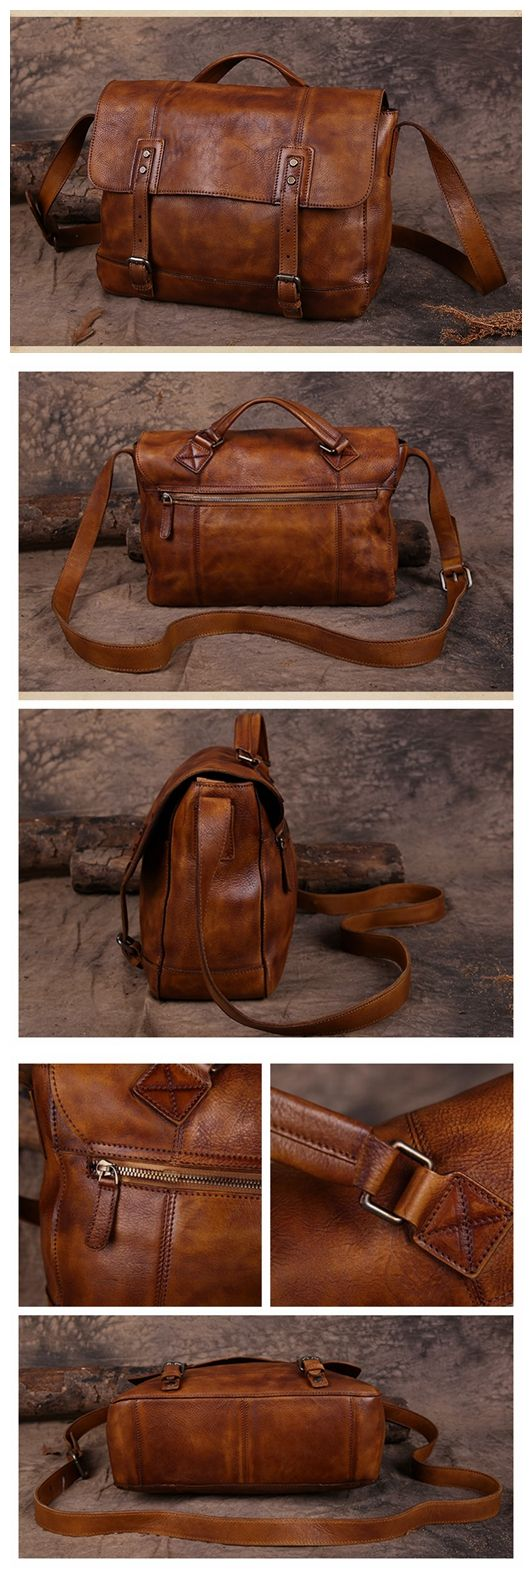 Handmade Vintage Top Grain Leather Briefcase Men's Messenger Bag 13'' Laptop Bag Men's Fashion Briefcase Leather Shoulder Bag 15003 Overview: Design: Vintage Leather Men's Briefcase In Stock: 3-5 days